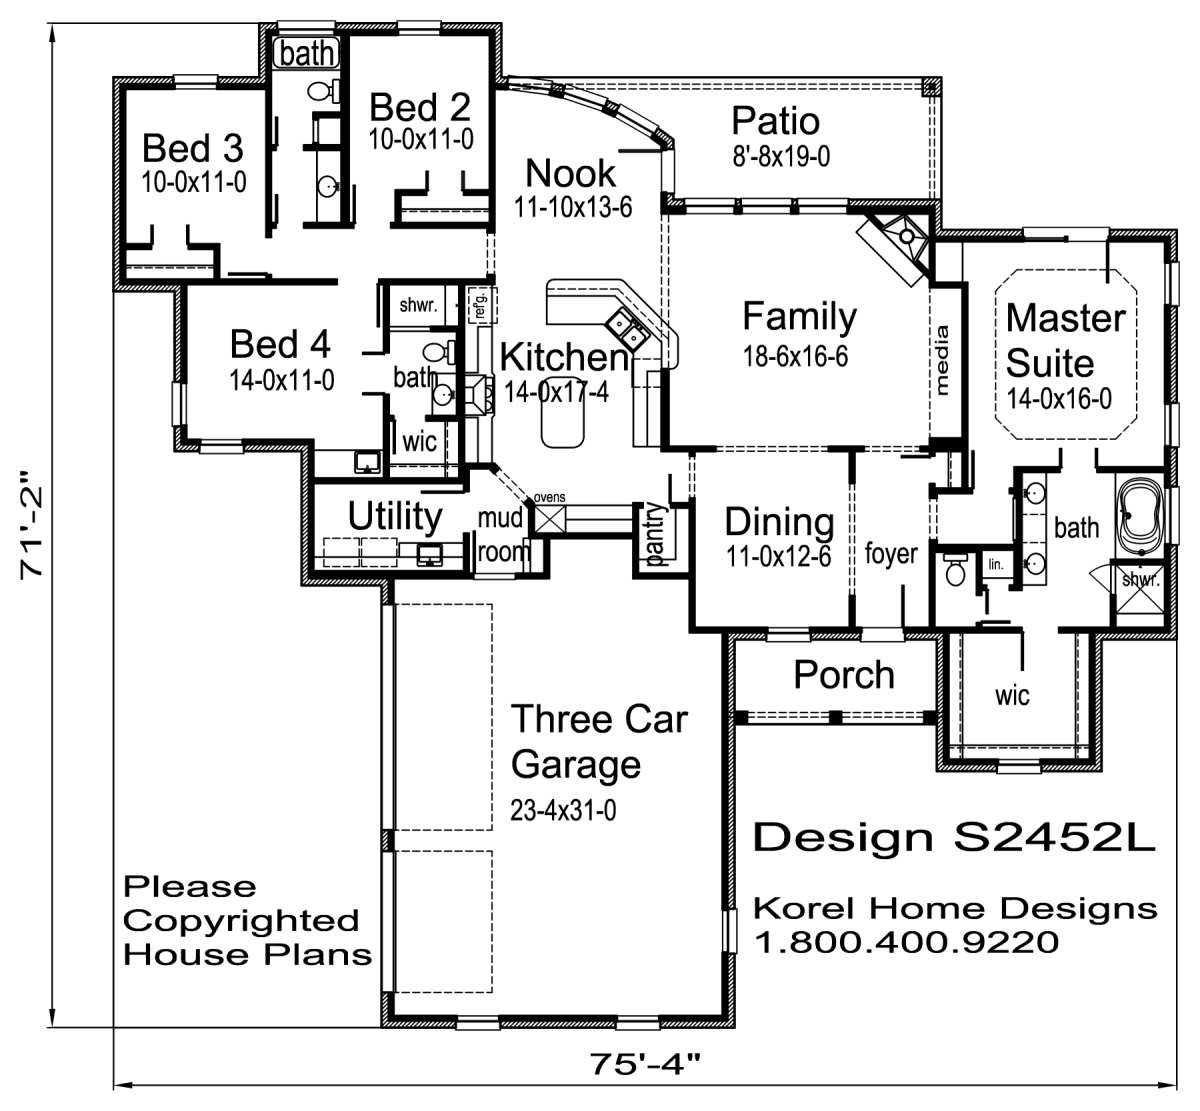 S2452l texas house plans over 700 proven home designs online by korel home designs - Single floor housessquare meters ...